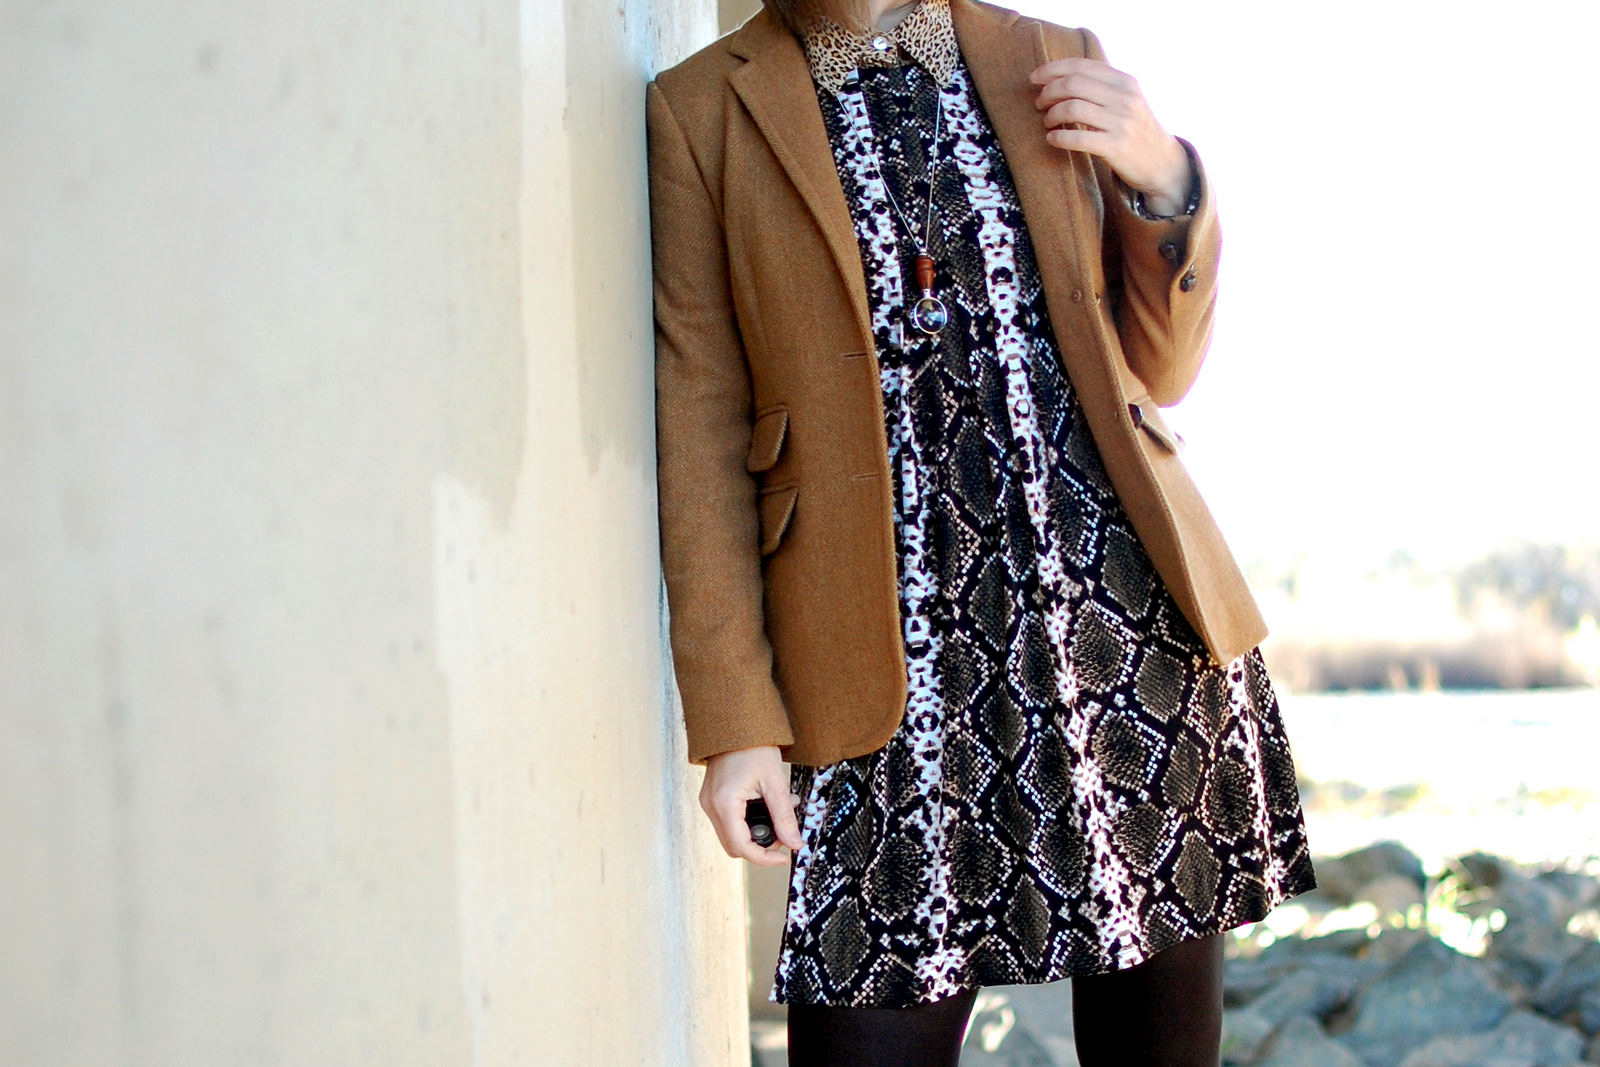 snake dress leopard blouse khaki wool blazer daily outfit blog ootd whatiwore2day